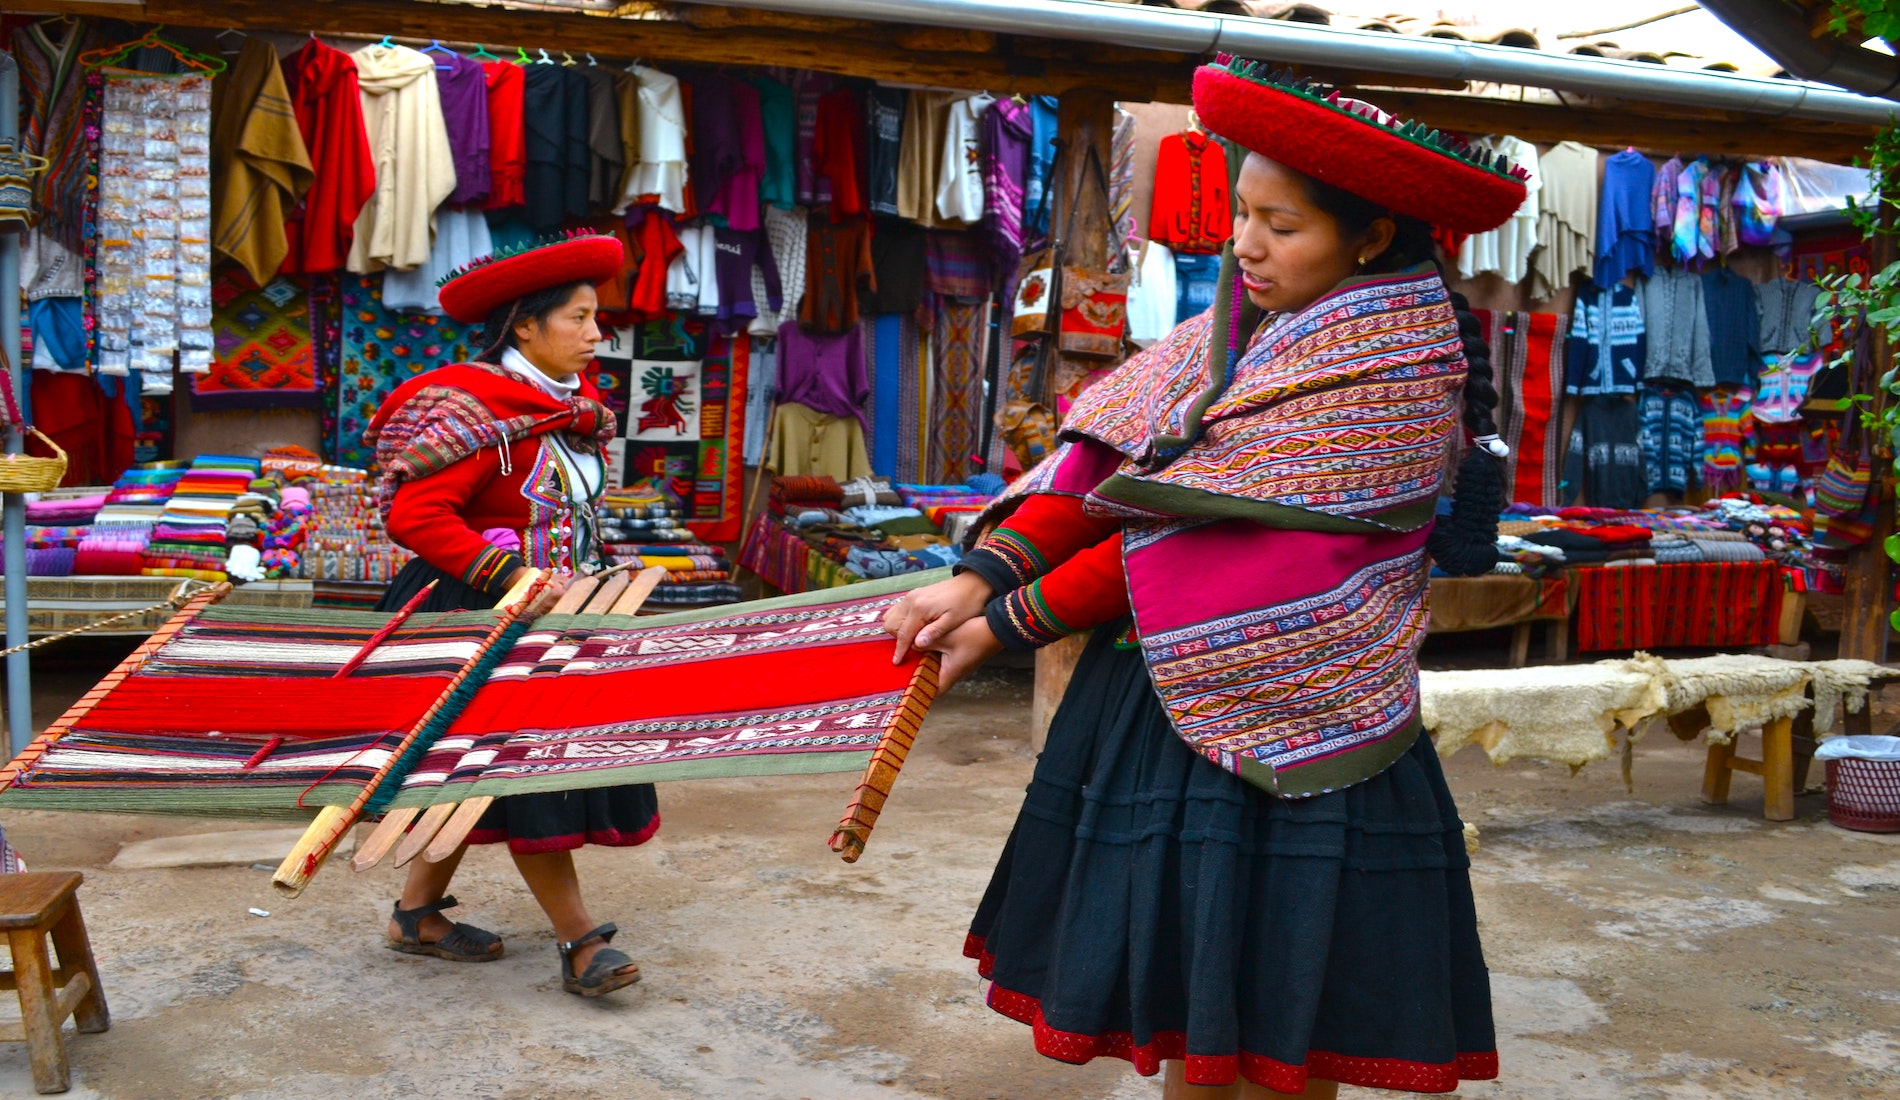 rondreis peru Chinchero local